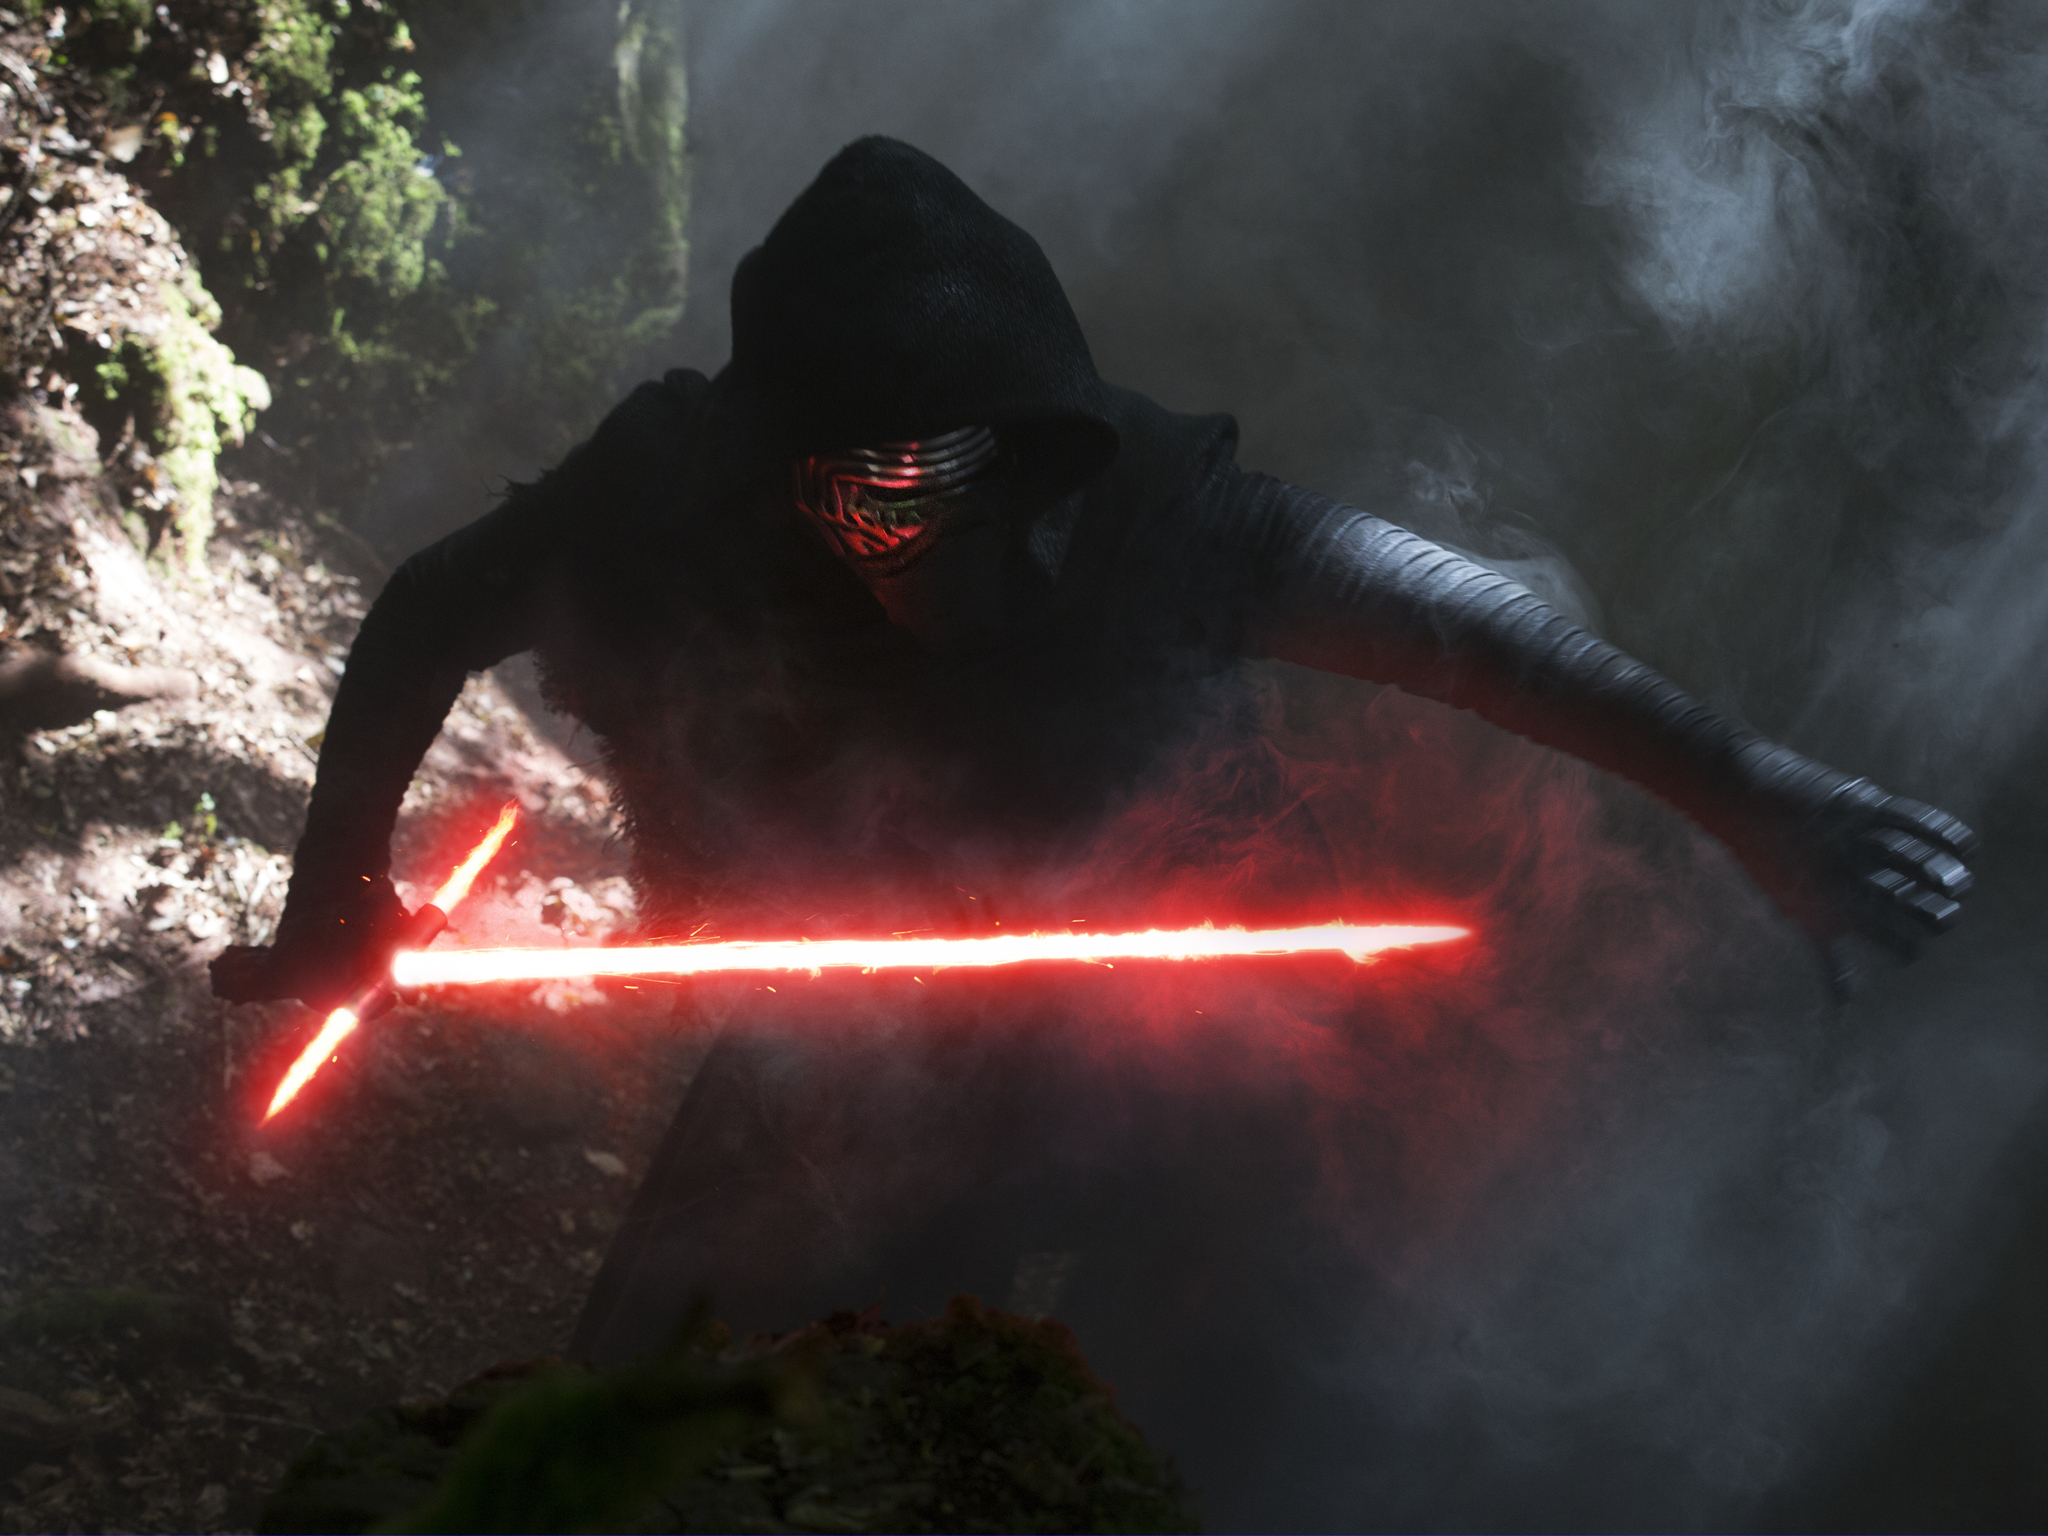 Still, Adam Driver very nearly outdoes Darth Vader